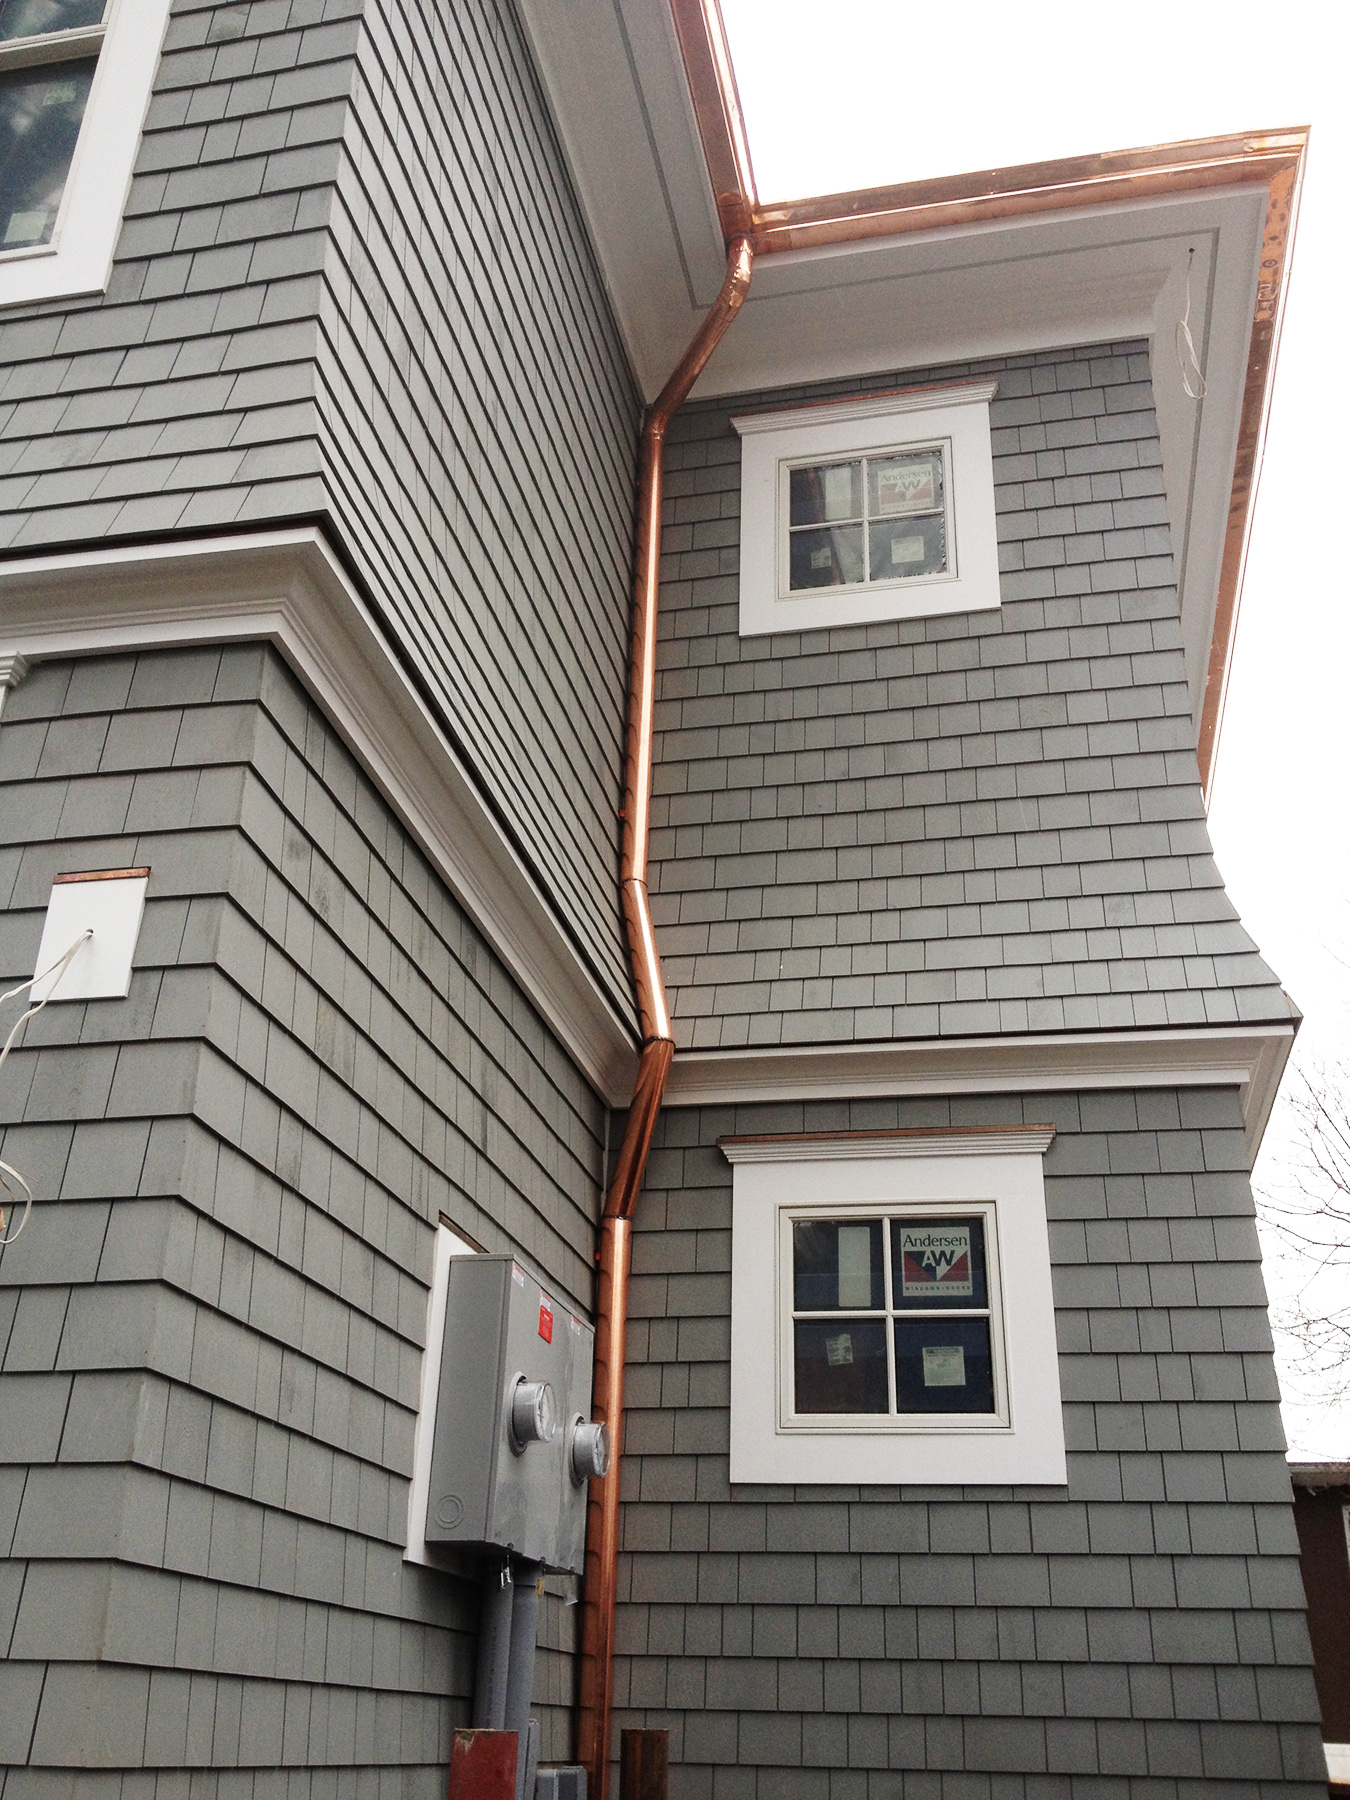 How to install a downspout in a gutter - Copper Gutter And Downspout Installation Greenwich Ct